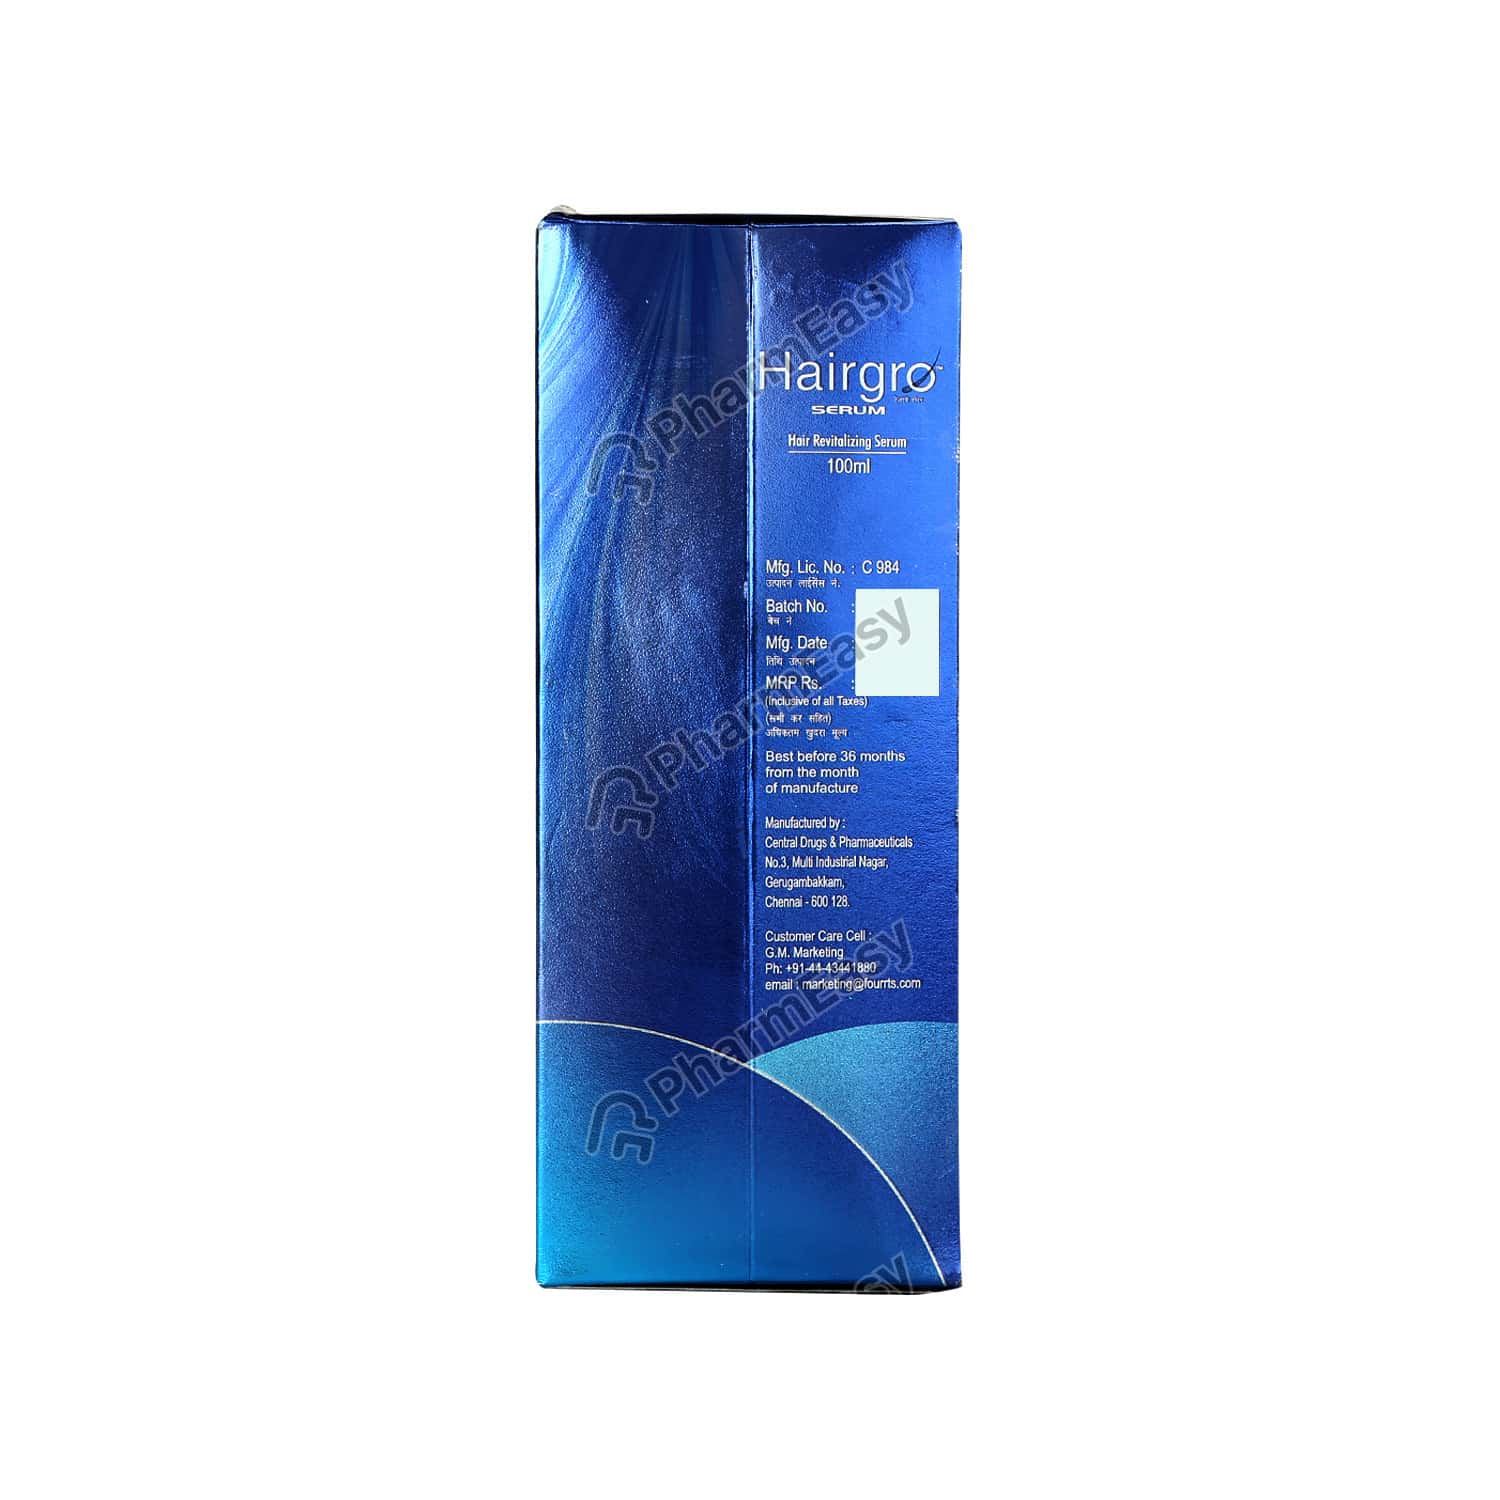 Hairgro Bottle Of 100ml Serum